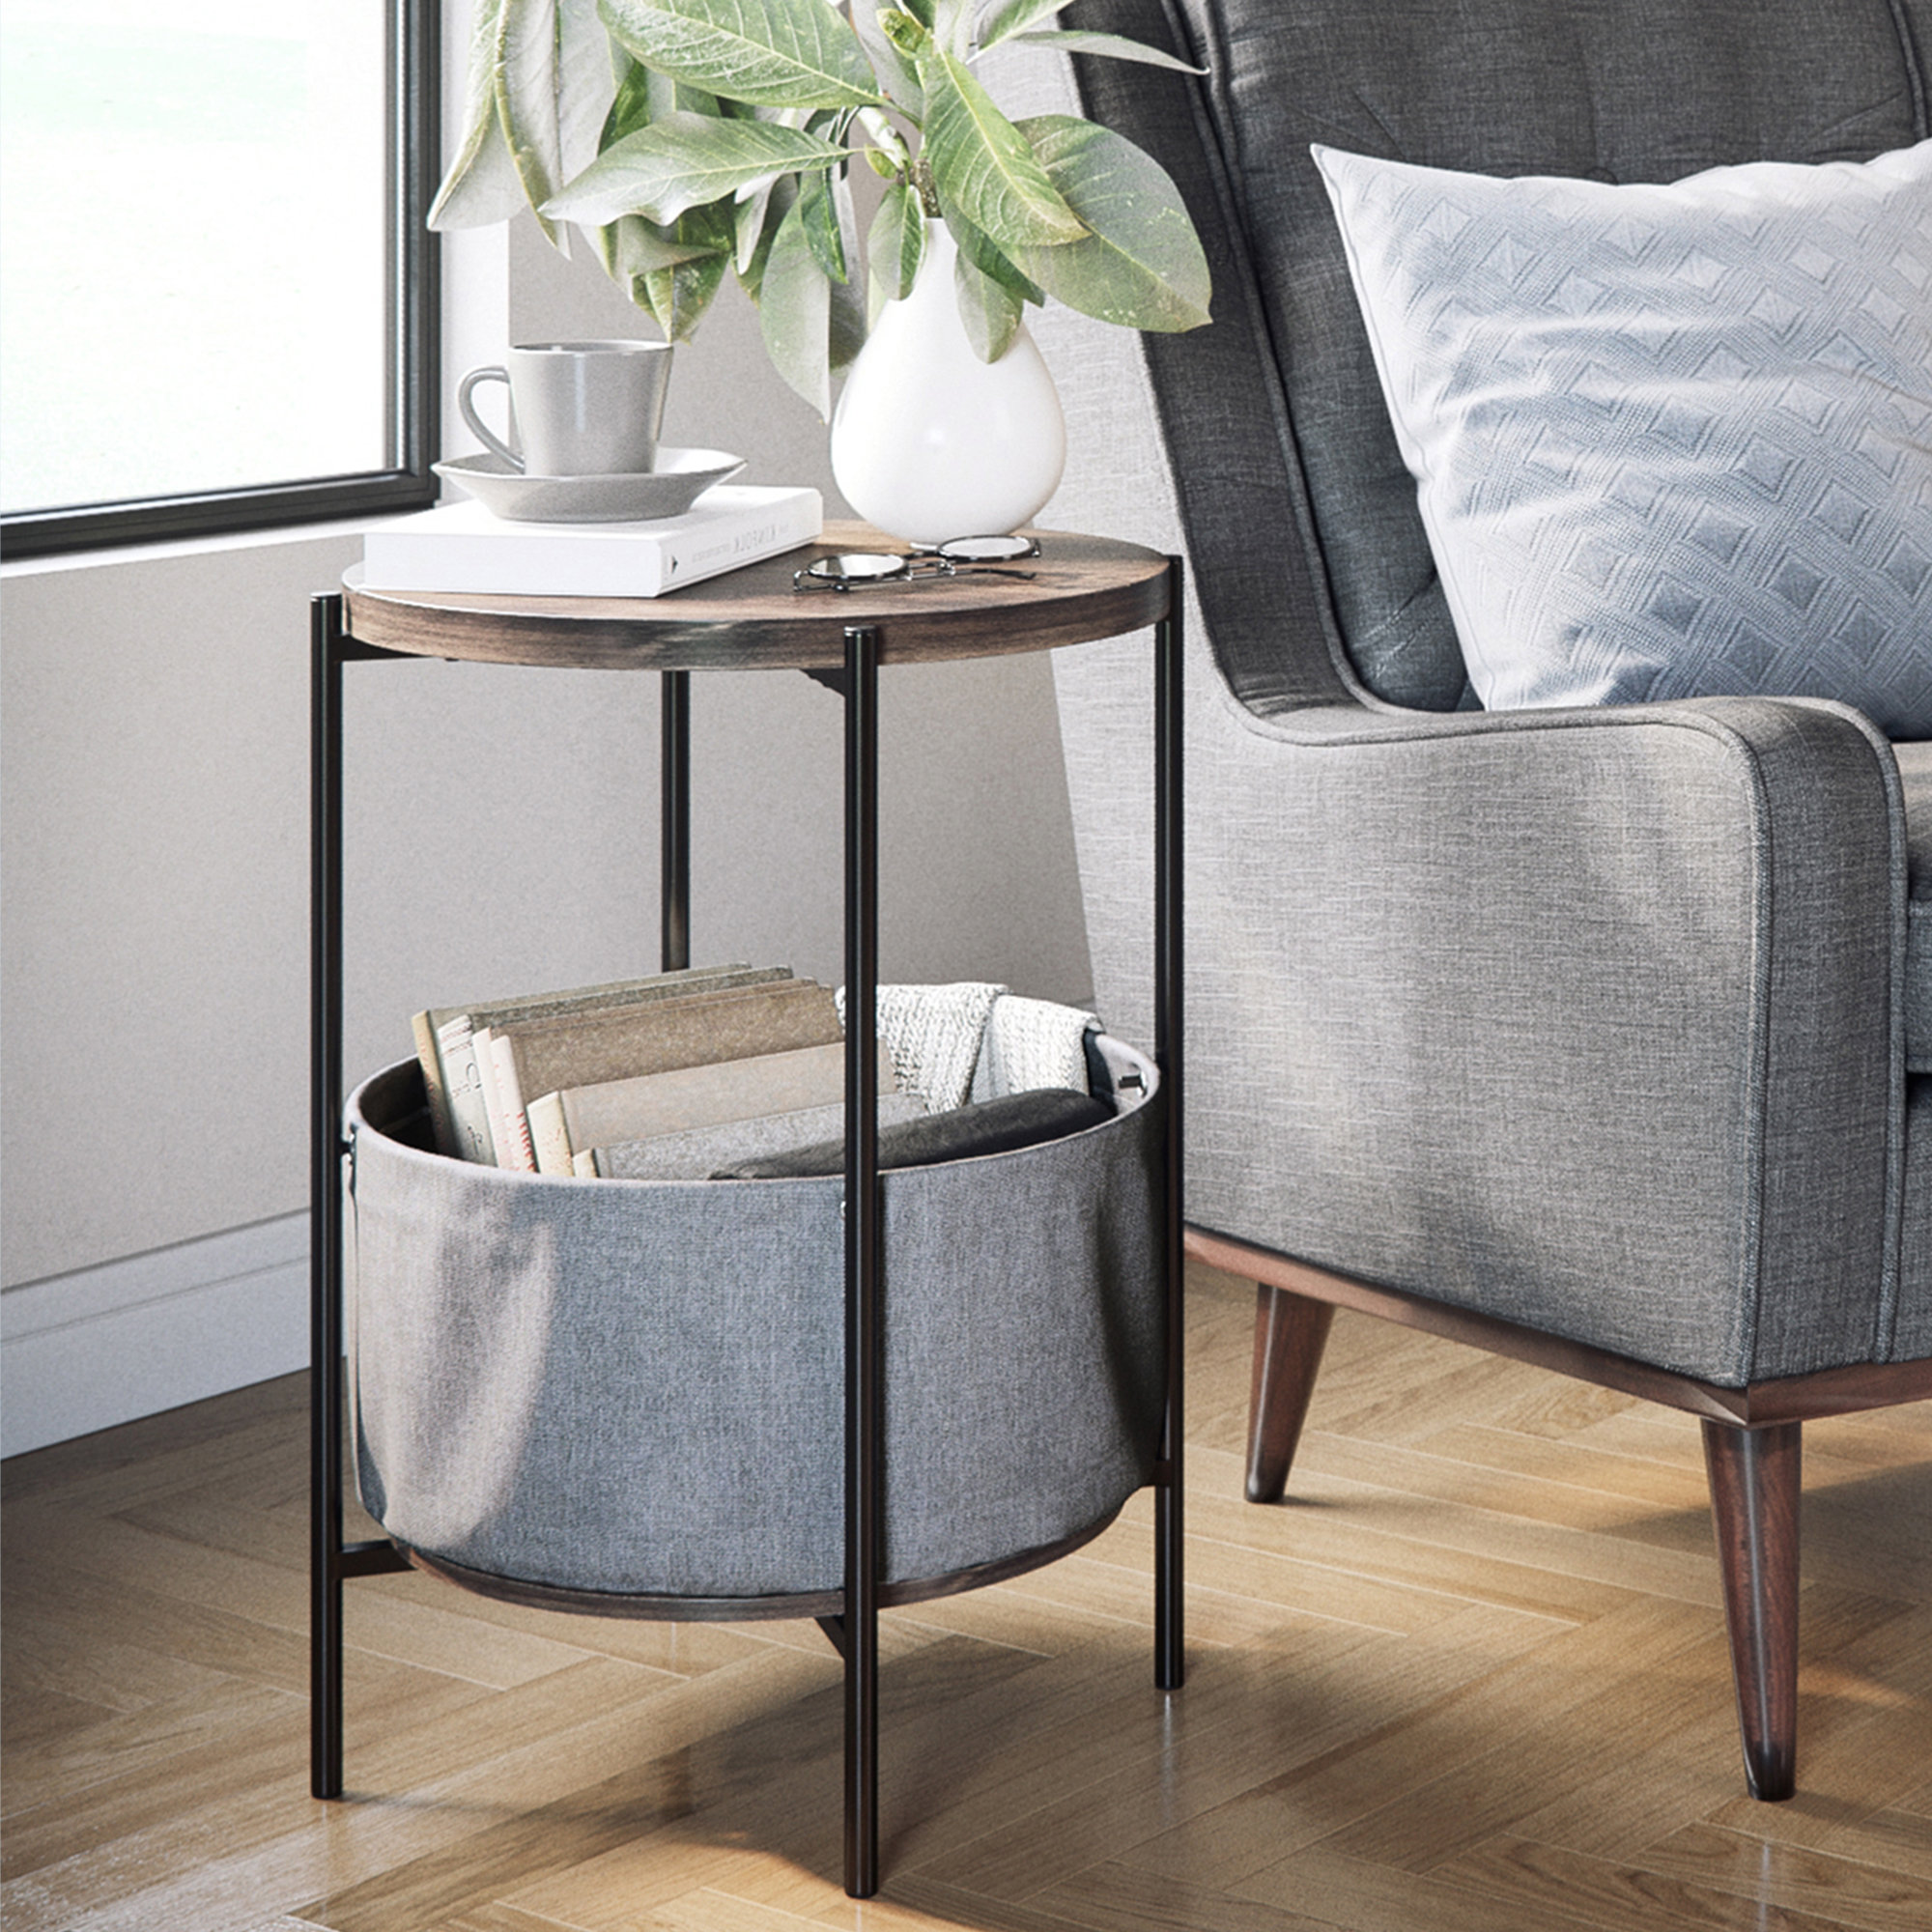 side table inches high bluxome end with storage extra tall accent quickview black and silver lamps pottery barn round chair antique corner slim white bedside patio umbrella fabric